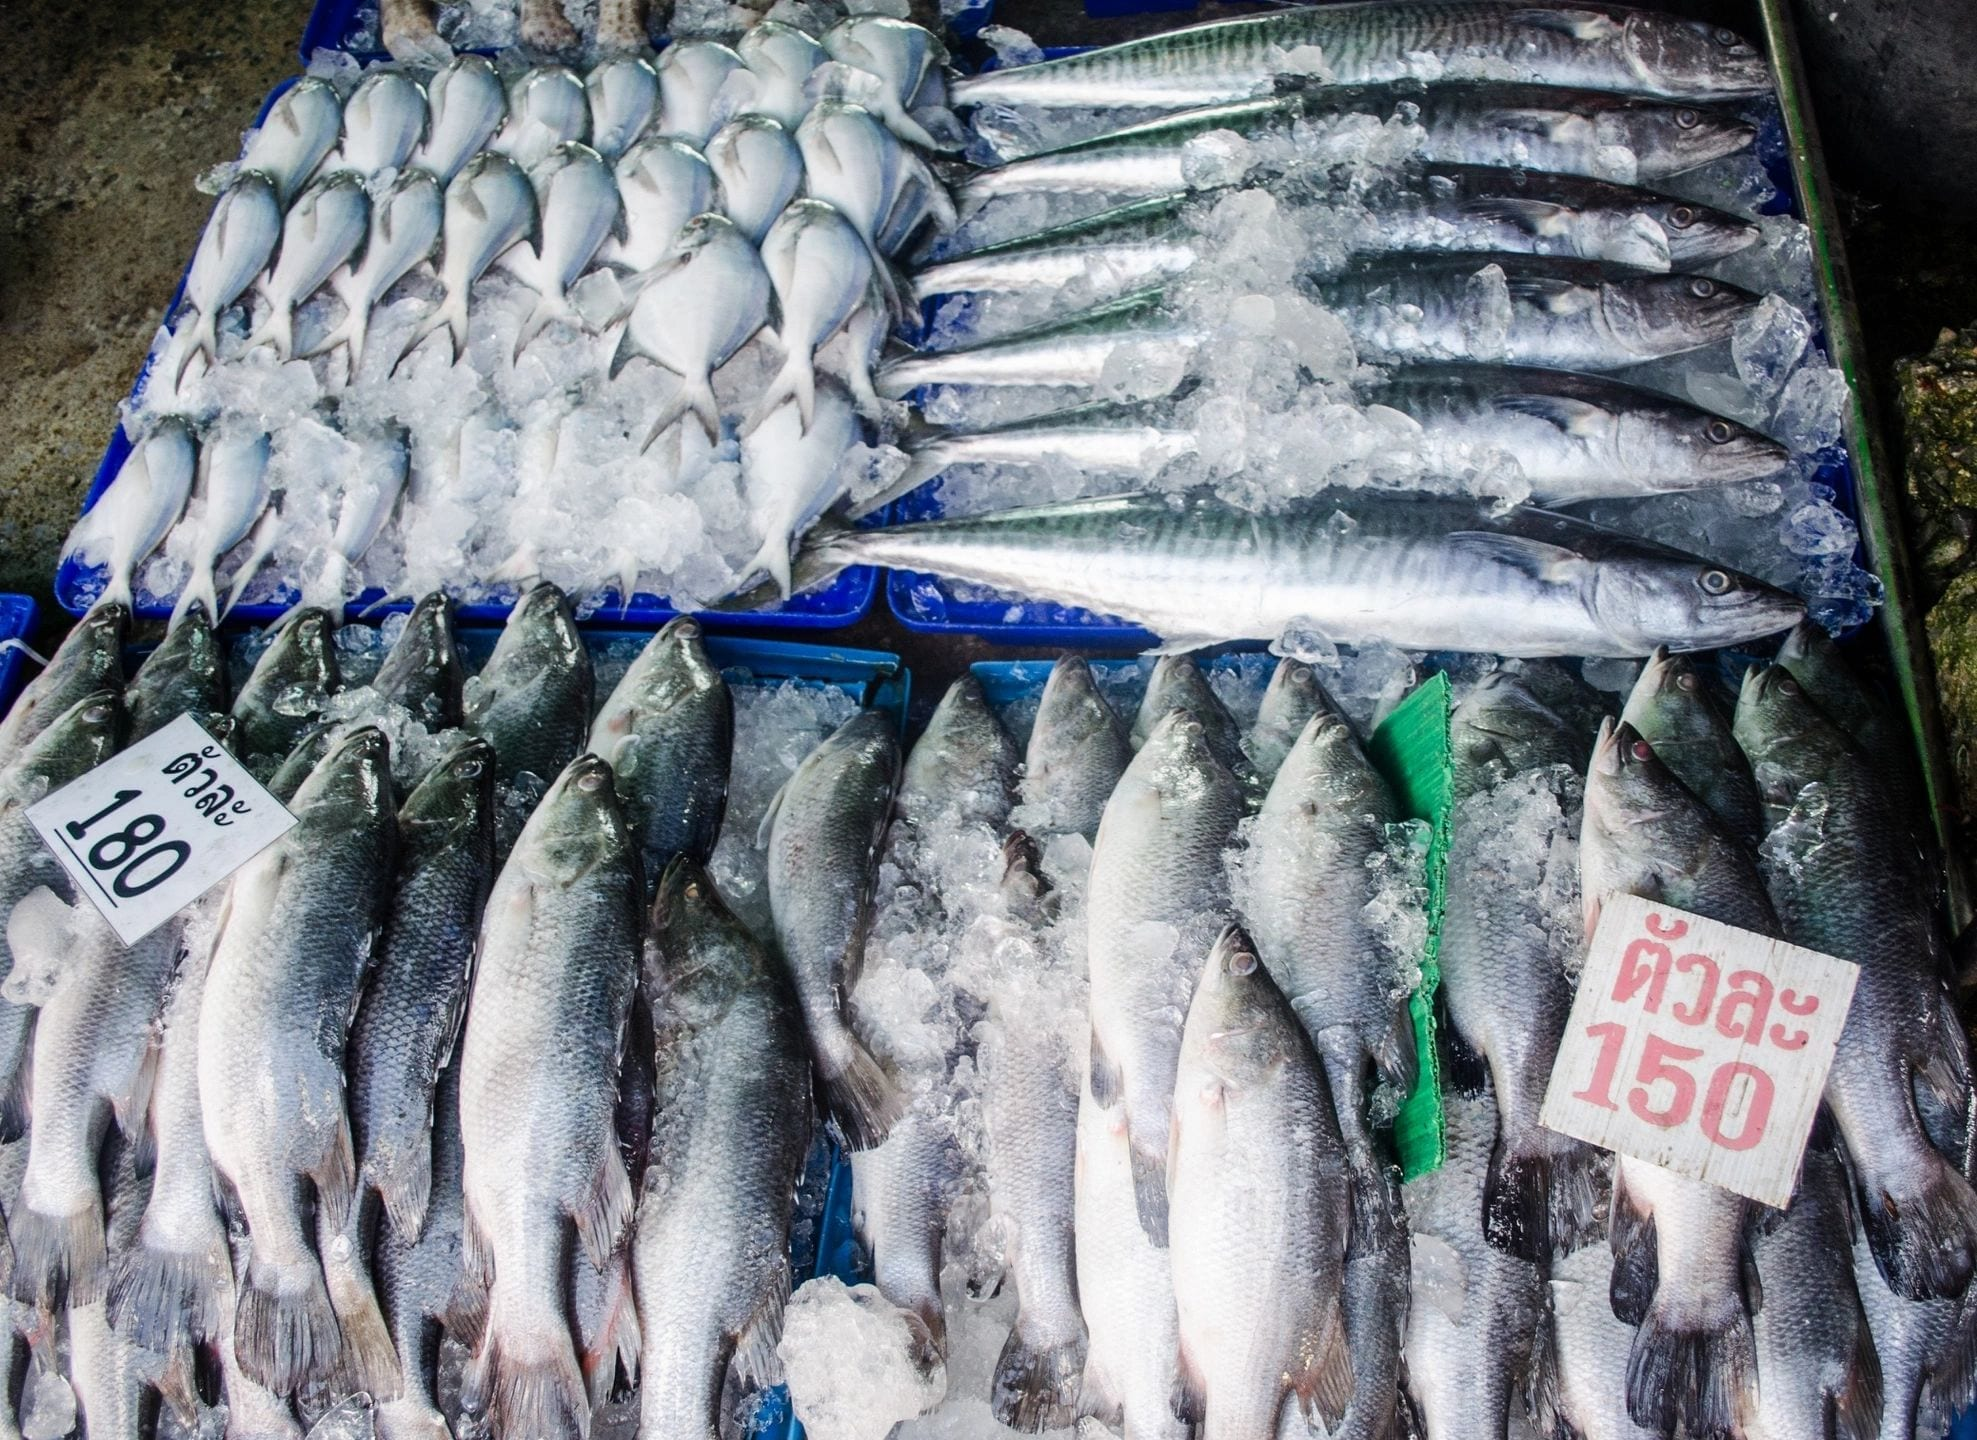 Satellites can reveal risk of forced labor in the world's fishing fleet